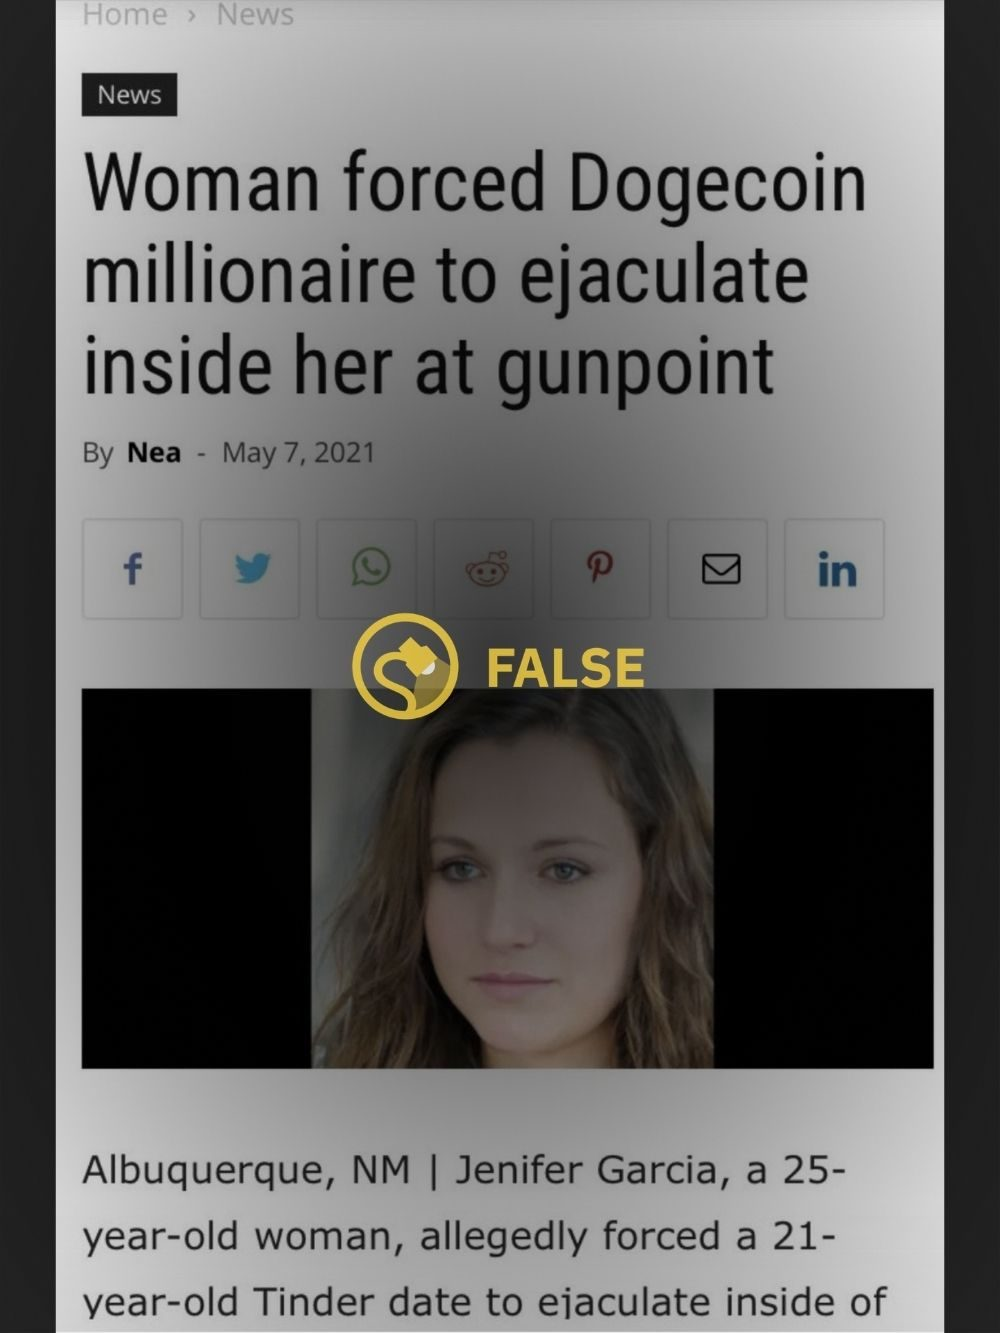 Did a Woman Force Dogecoin Millionaire To Impregnate Her?